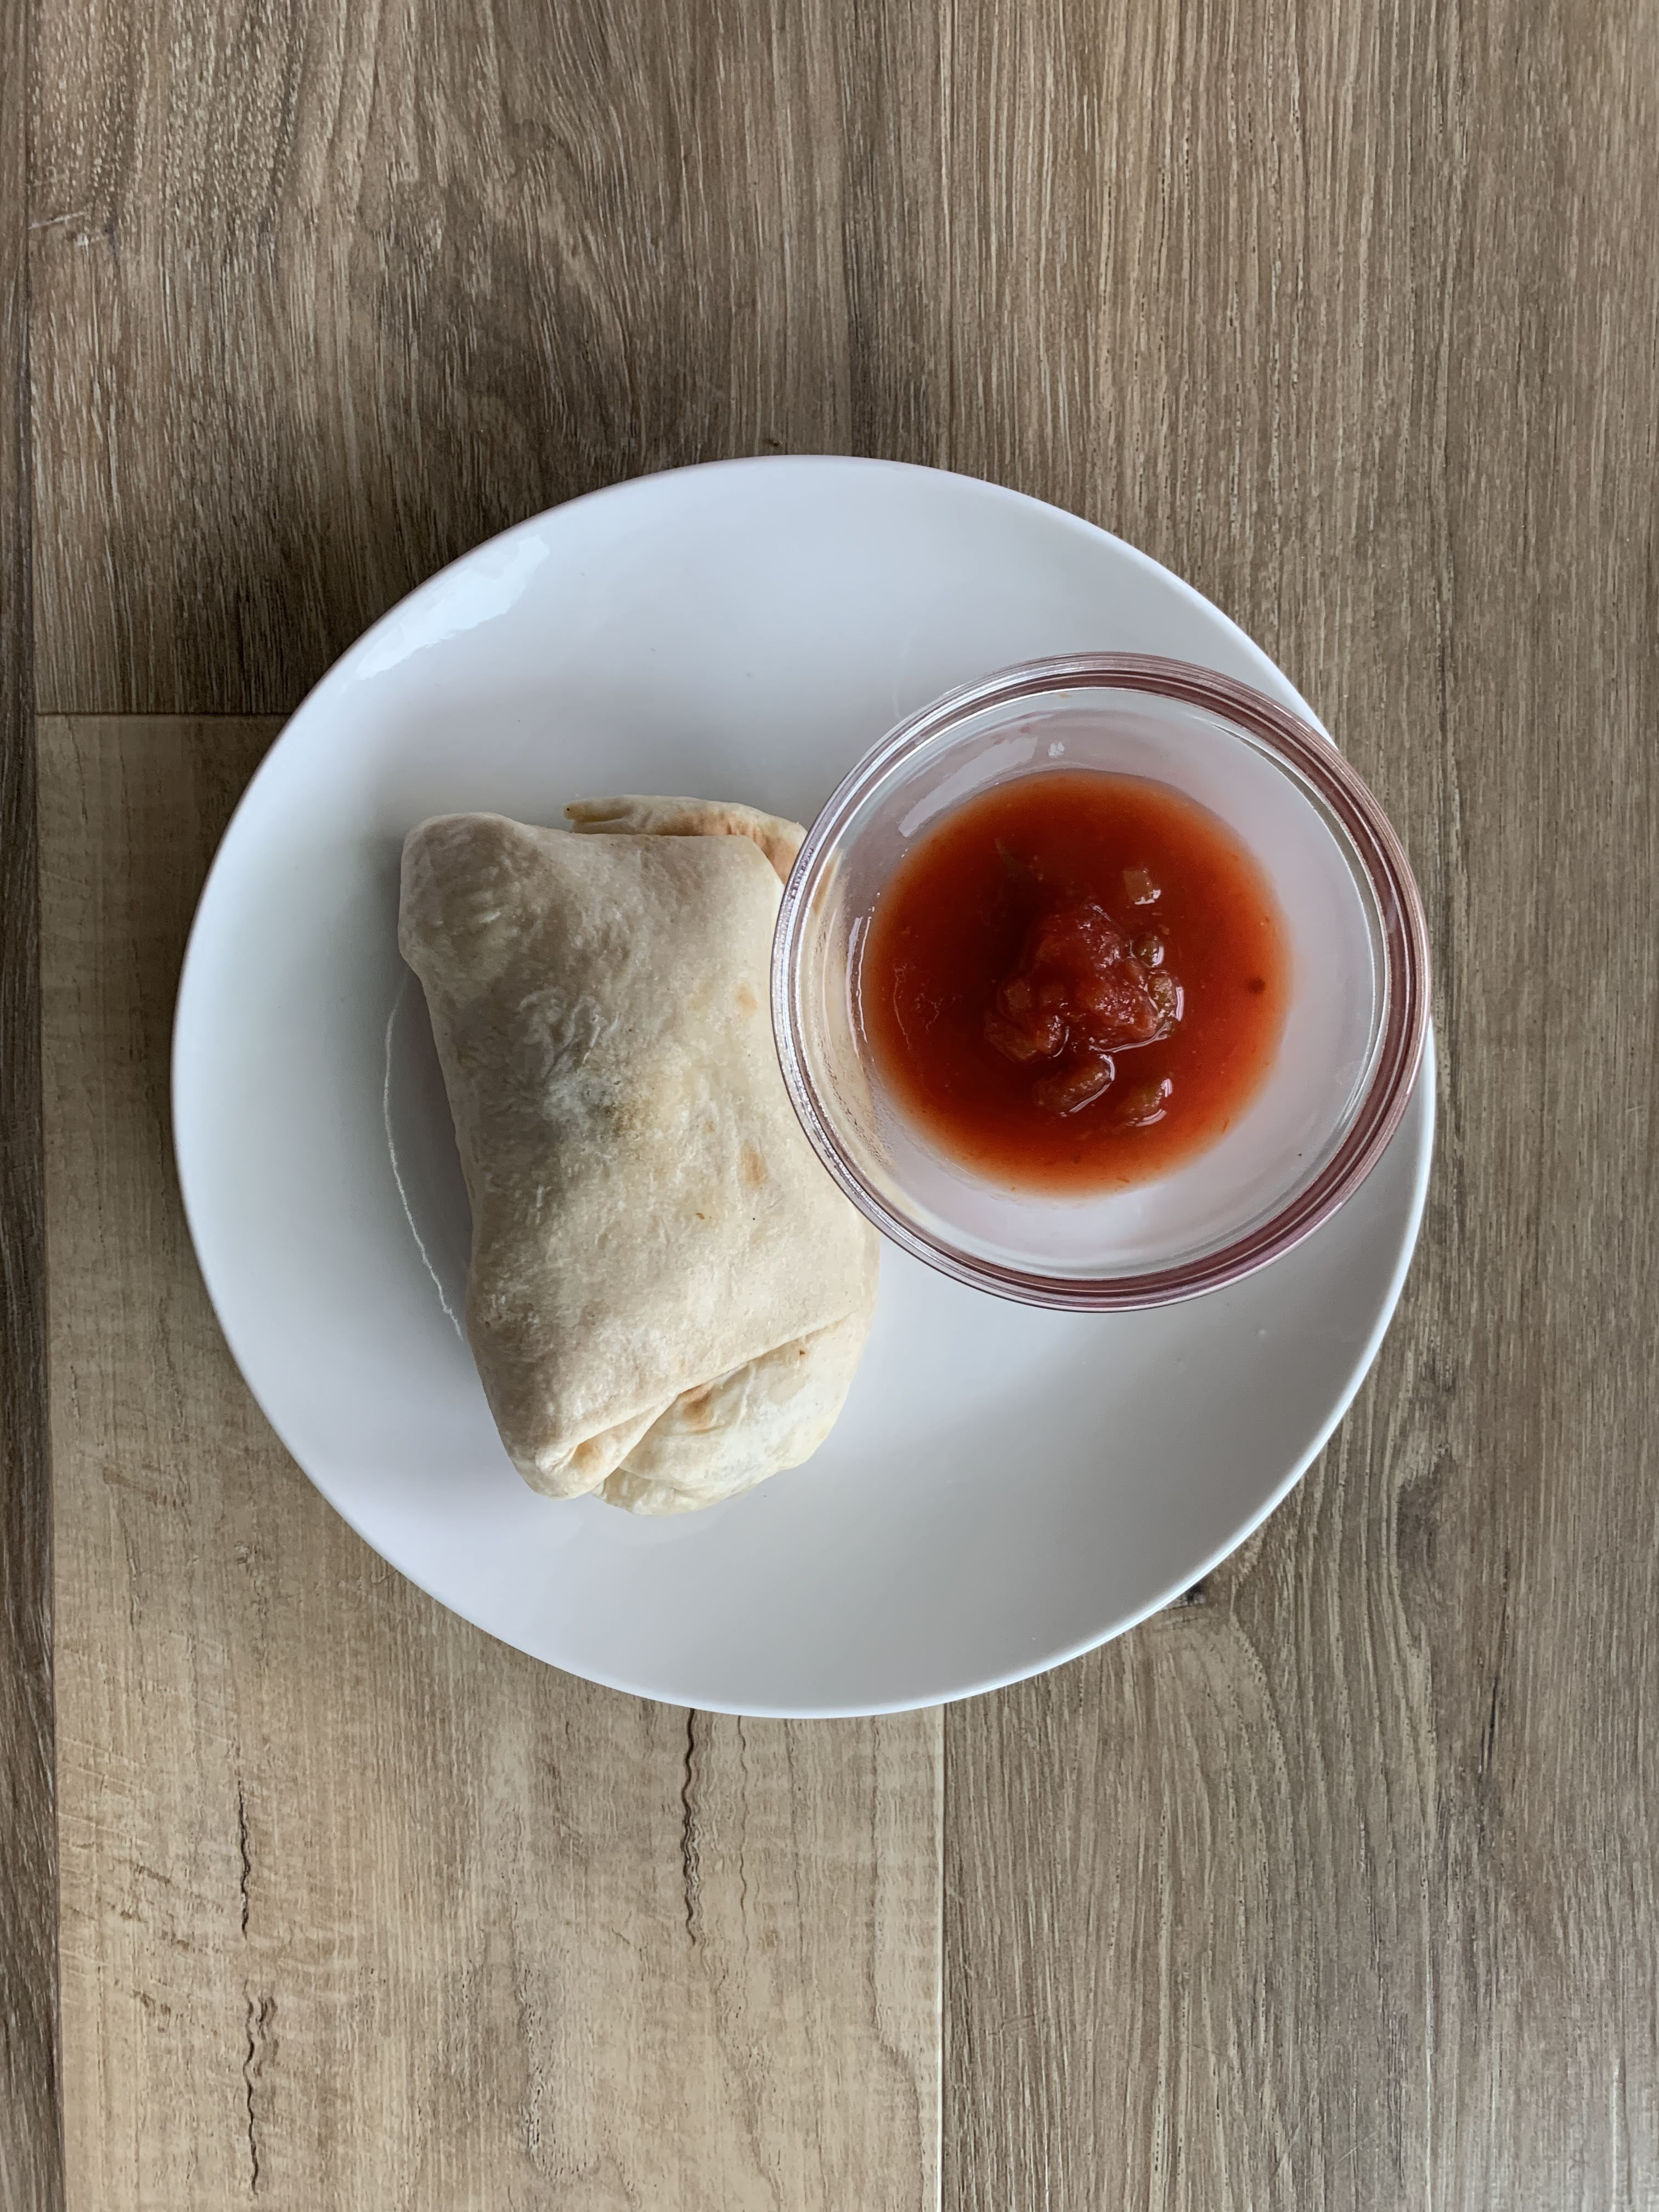 Low Carb Burrito on white plate with salsa